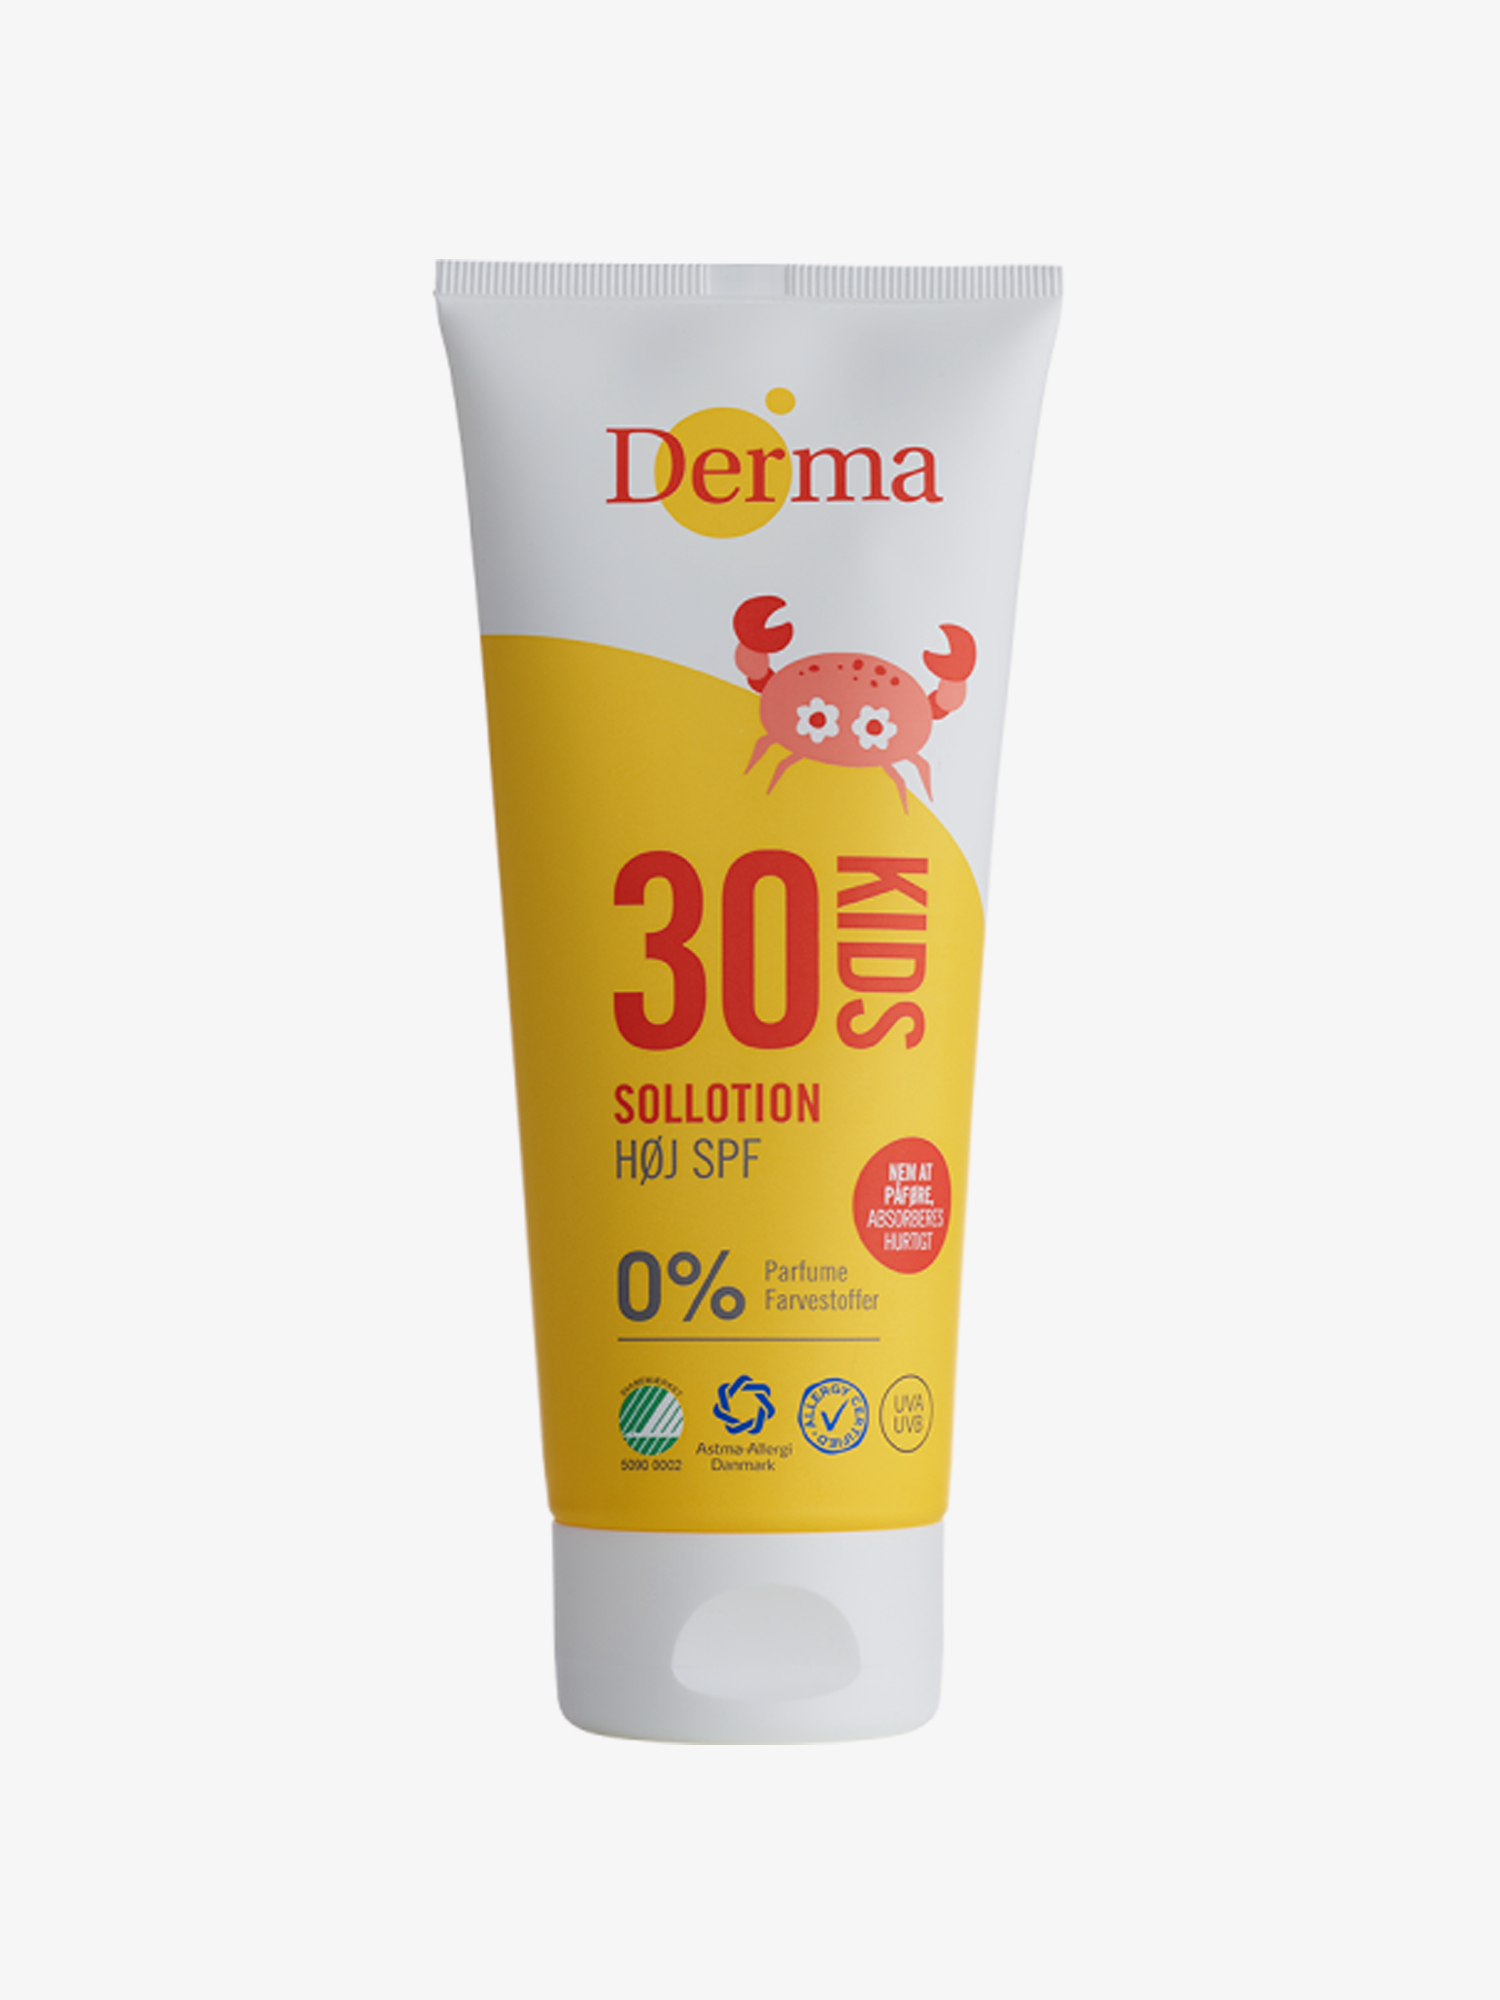 DERMA AFTERSUN LOTION KIDS 30